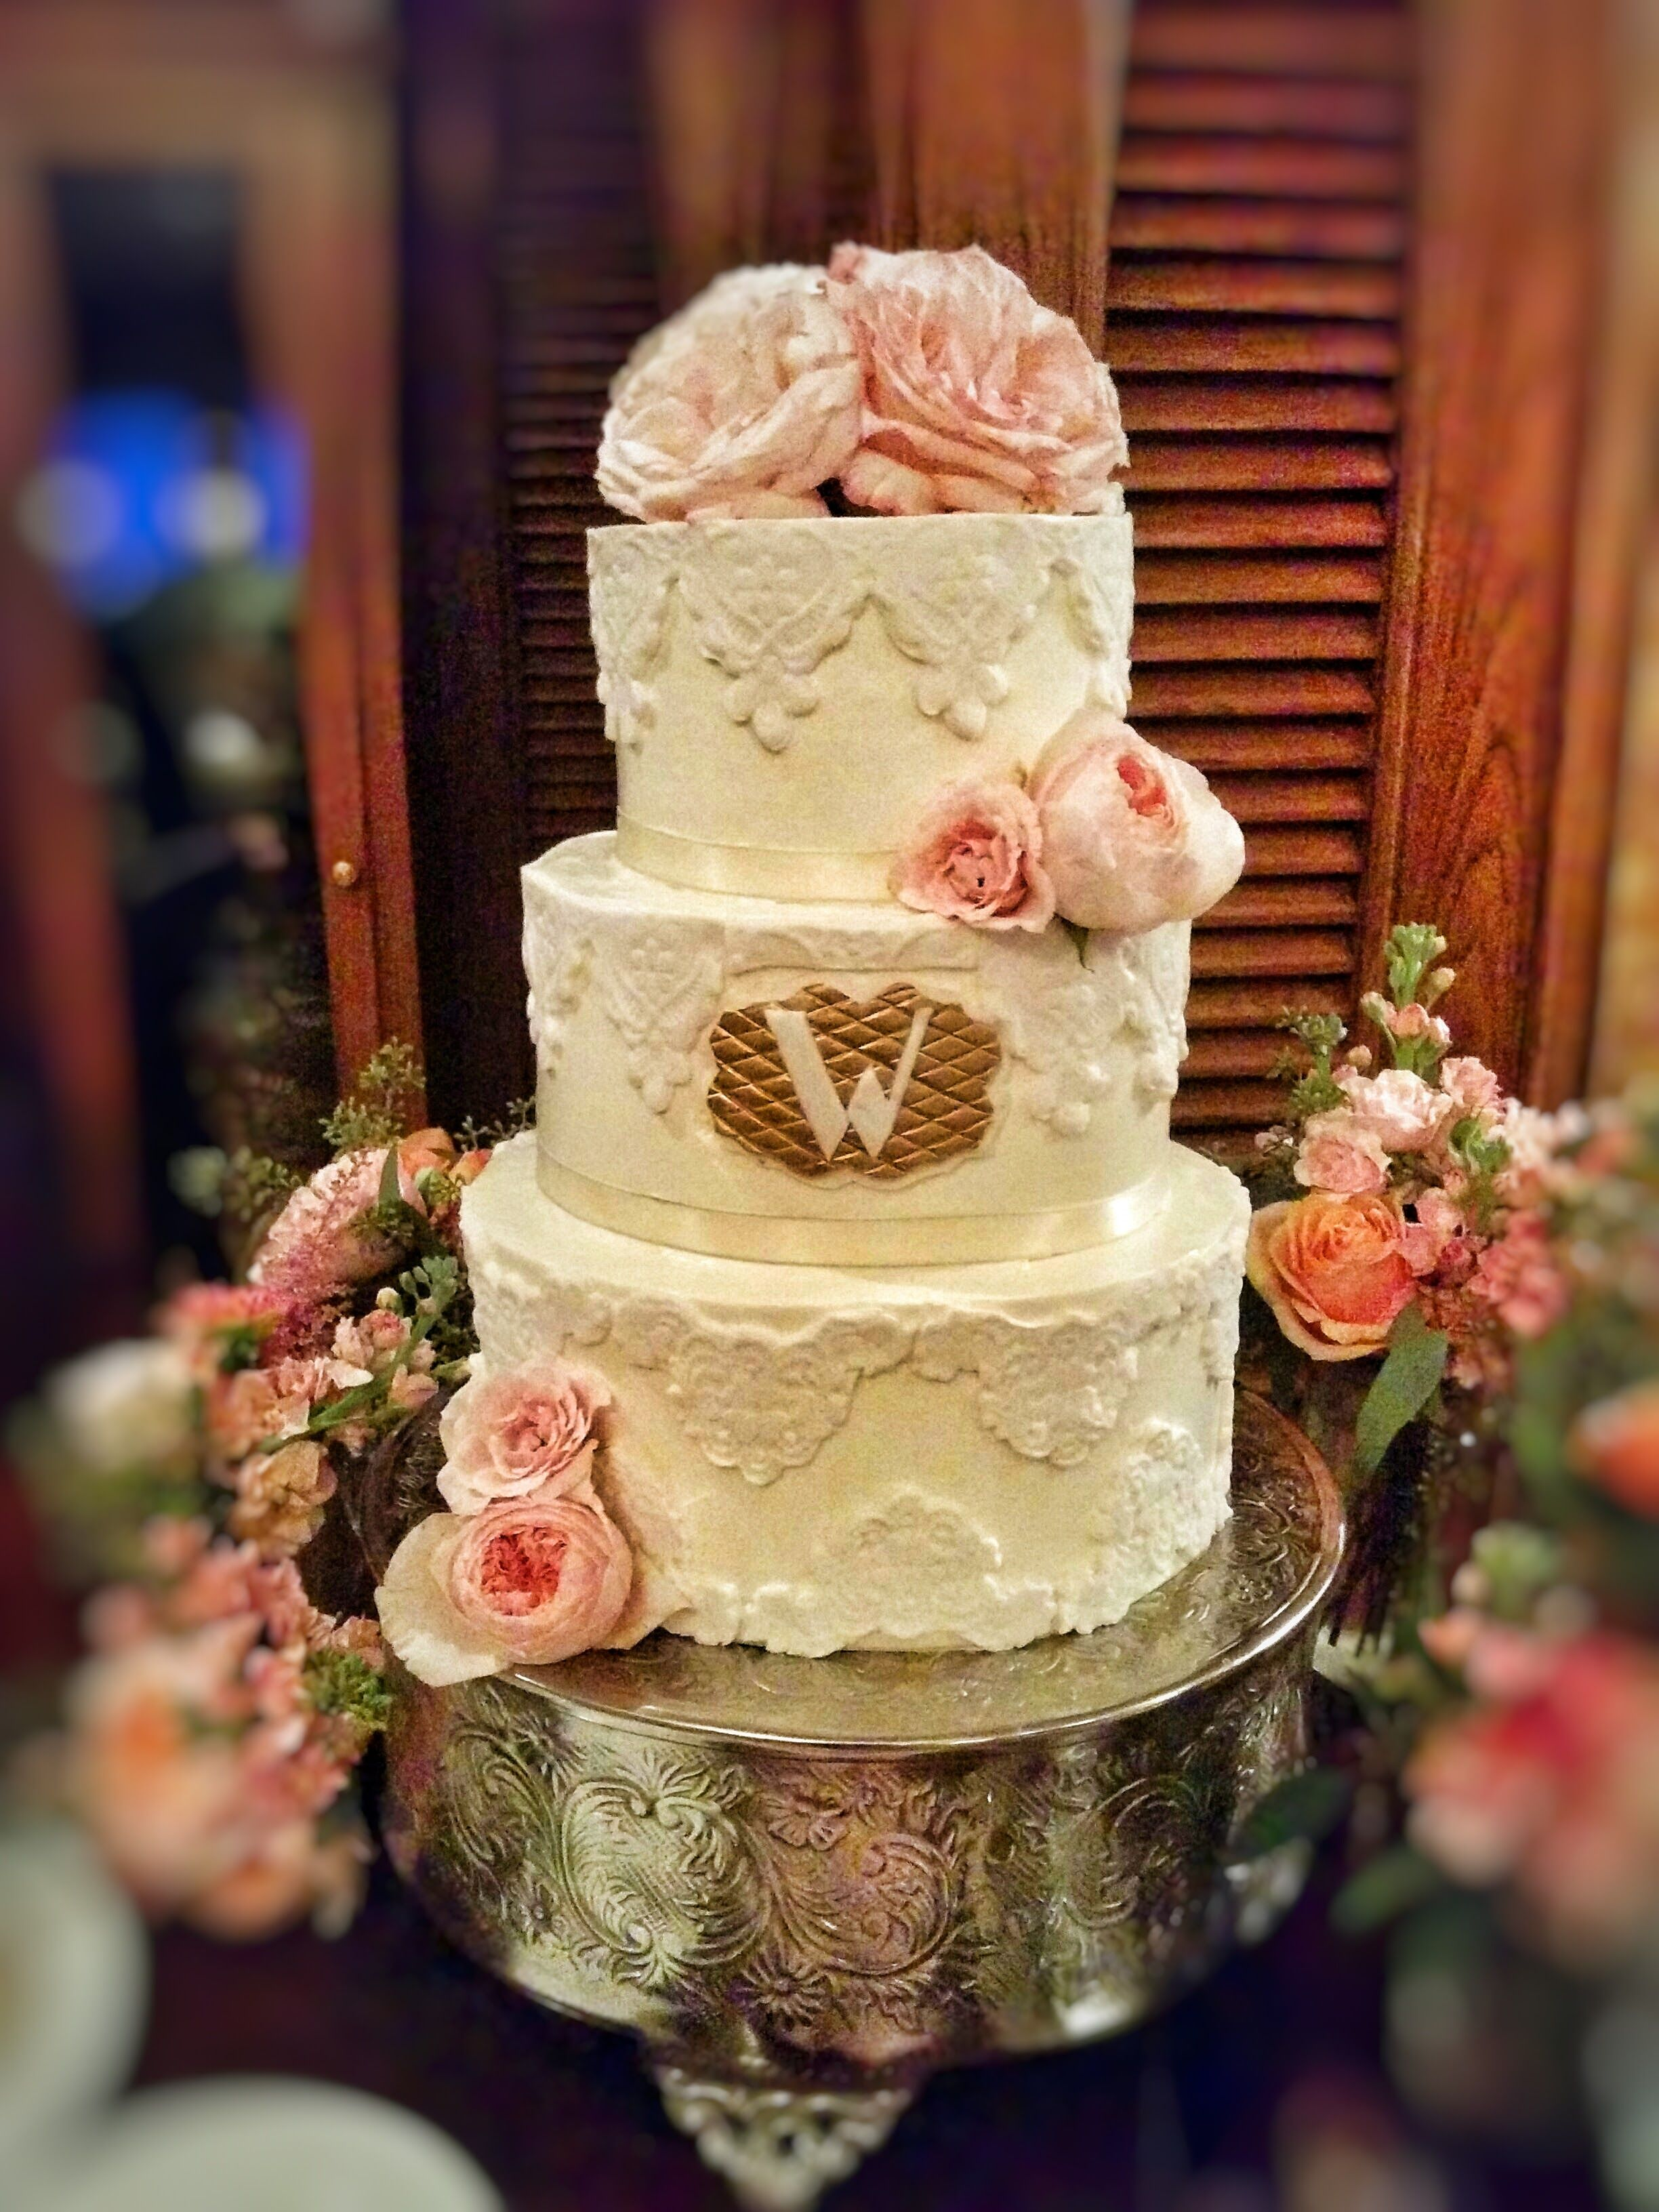 3-Tier Fondant Cake with Lace Design, Ribbon Boarder, Floral Accents ...